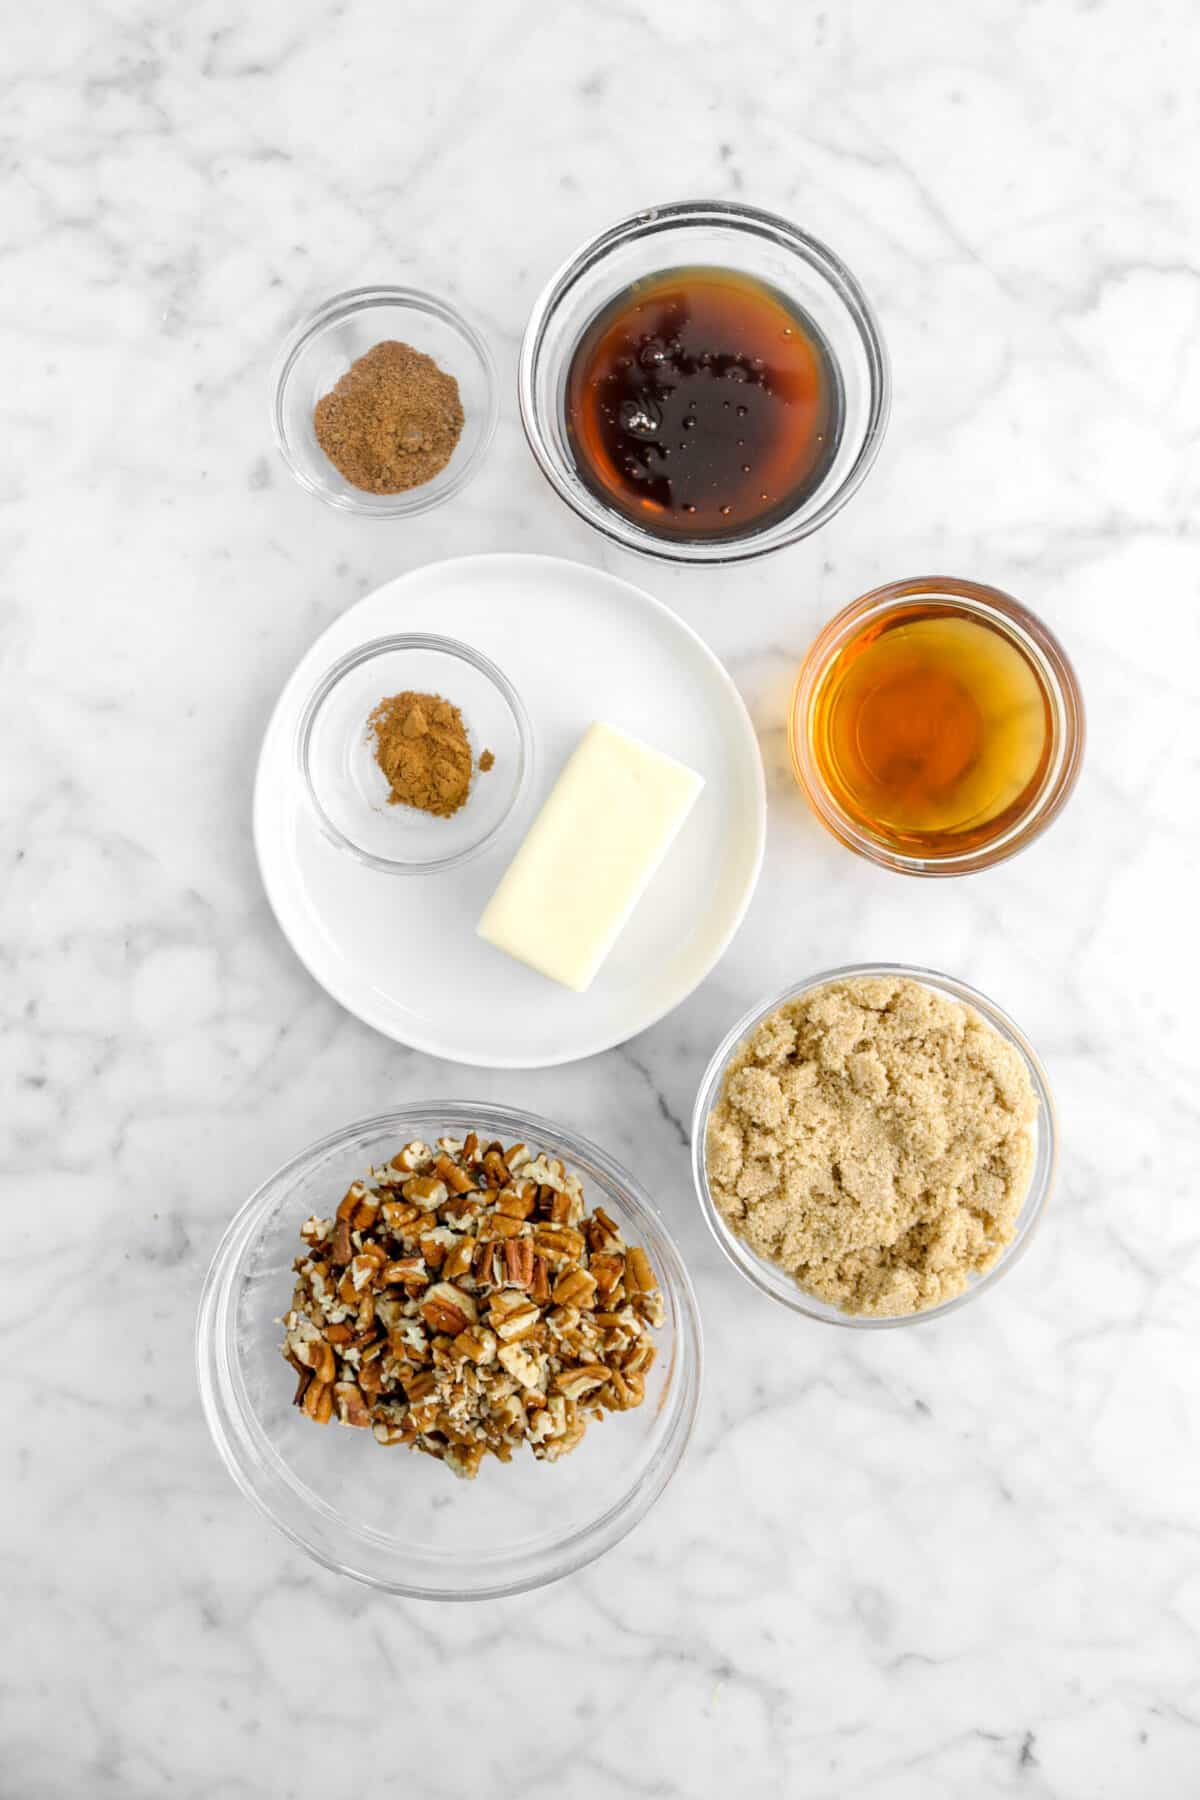 nutmeg, cinnamon, corn syrup, rum, butter, brown sugar, and chopped pecans on marble counter